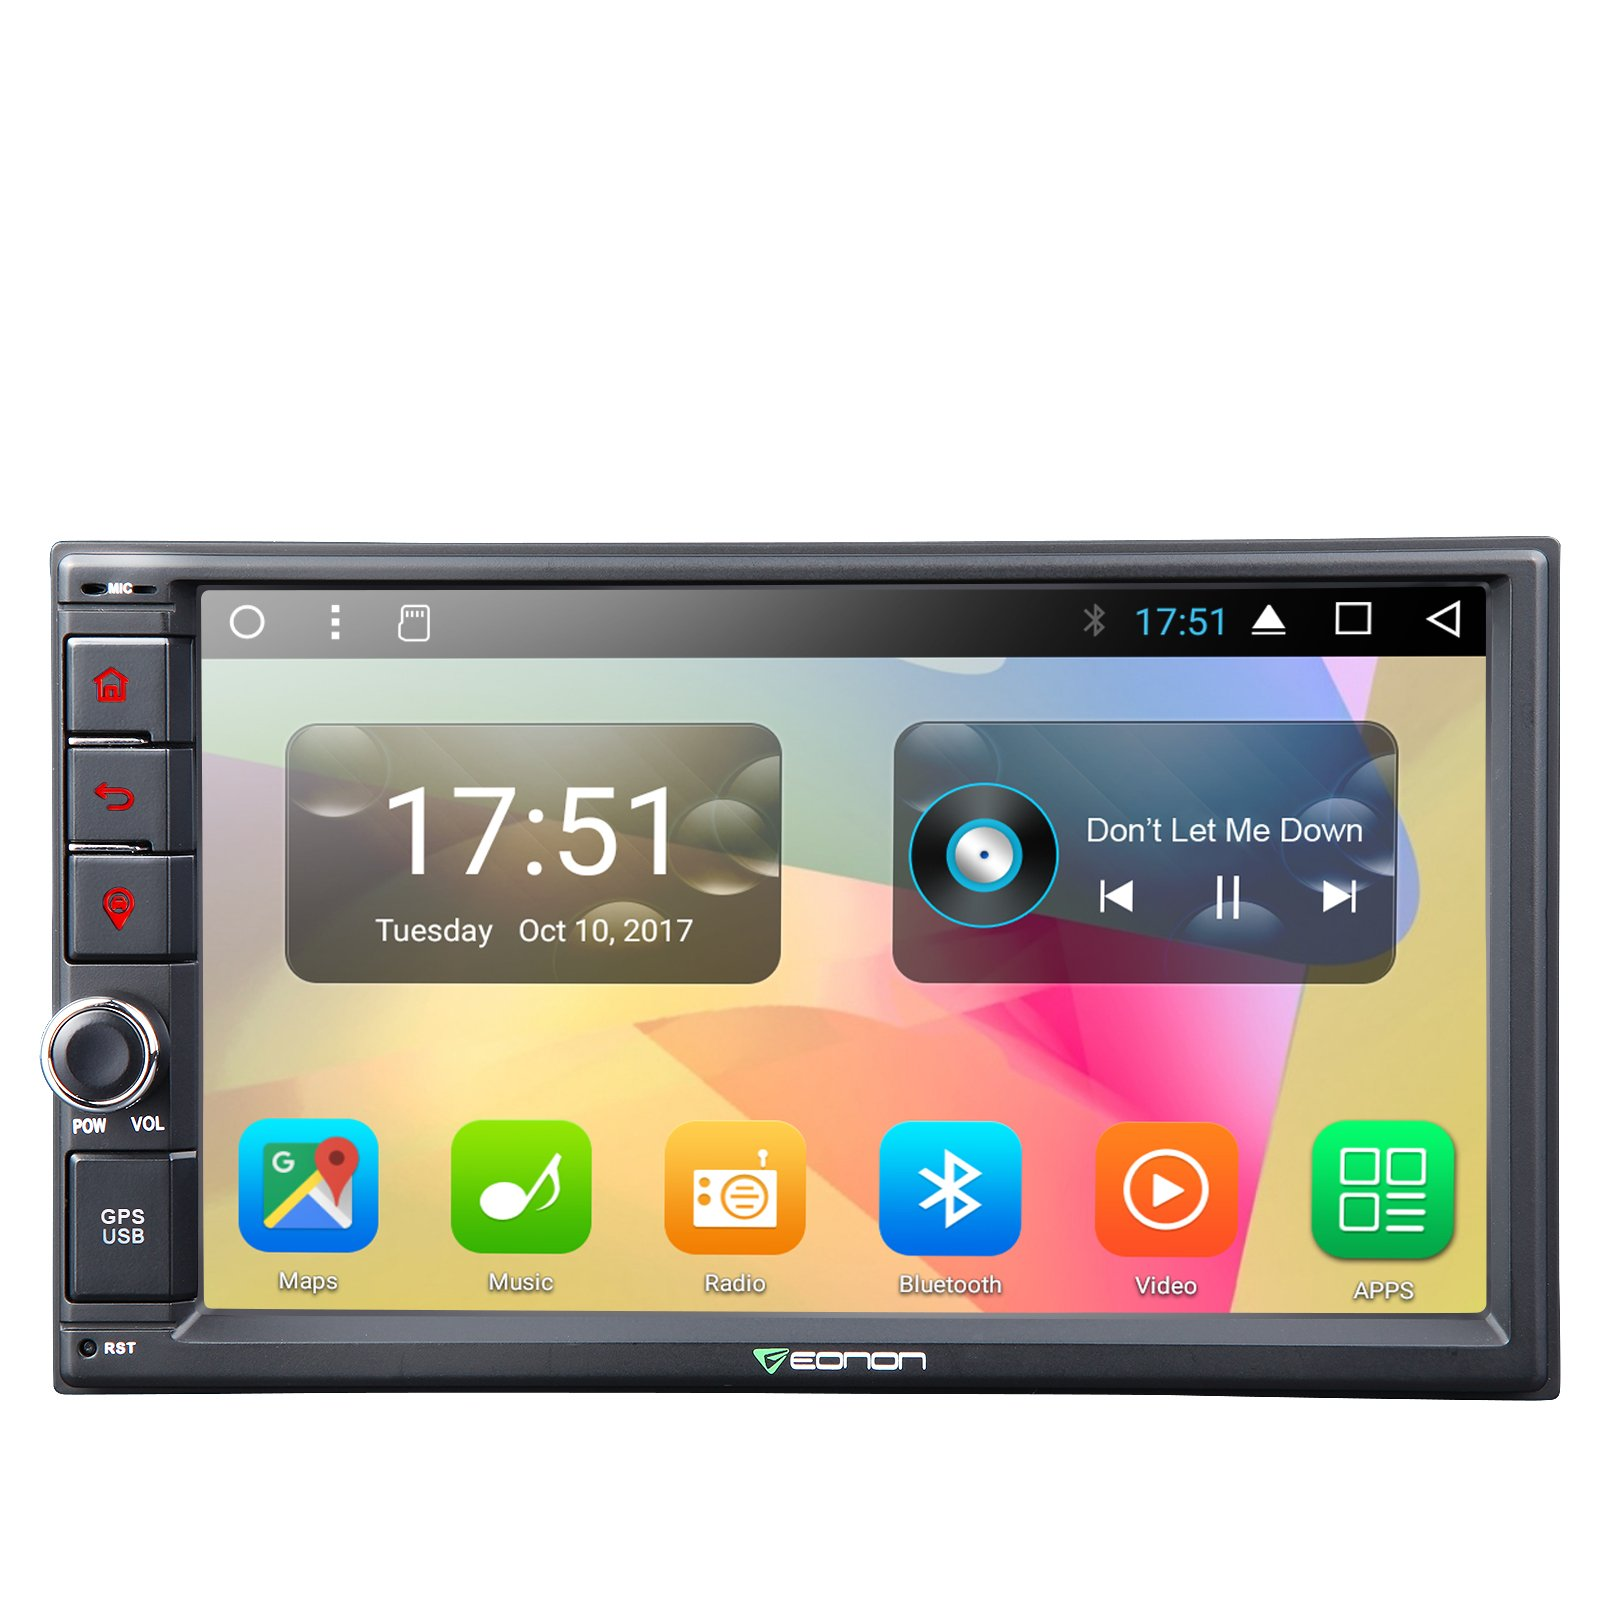 Eonon GA2167 Universal Double Din Car Stereo Player, Android 7.1 Nougat 7 Inch Octa-Core Car Navigation System,2GB RAM 32GB ROM Head Unit with Bluetooth,1024x600 HD Screen Wifi(NO CD/DVD)